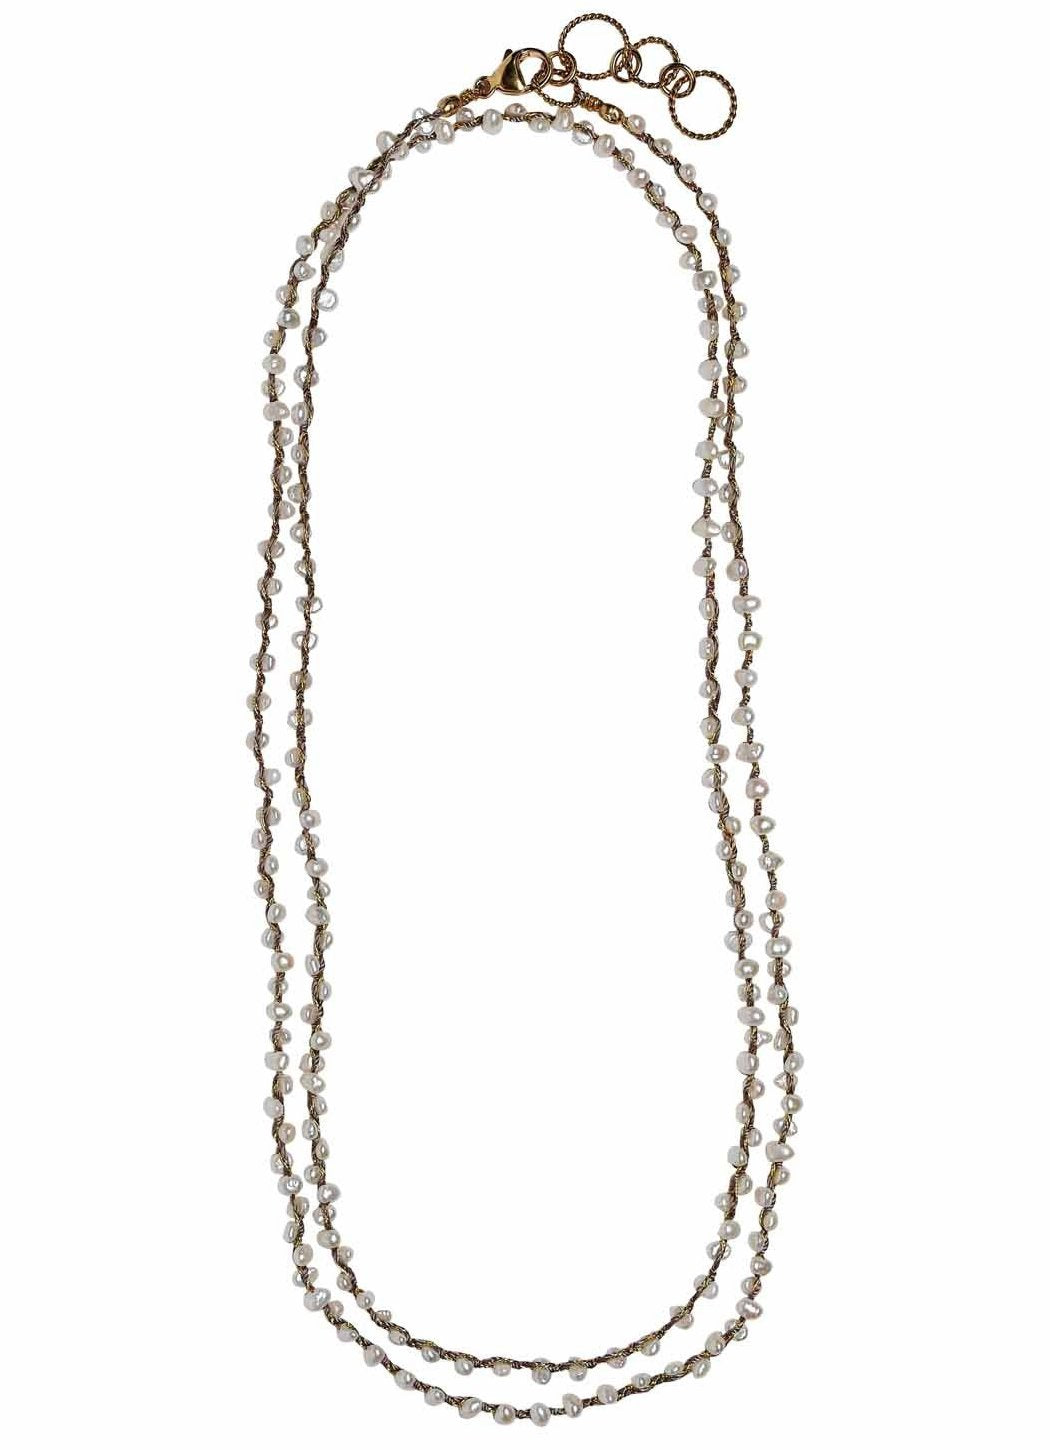 Woven Long Necklace in Pearl | Cluster Weave